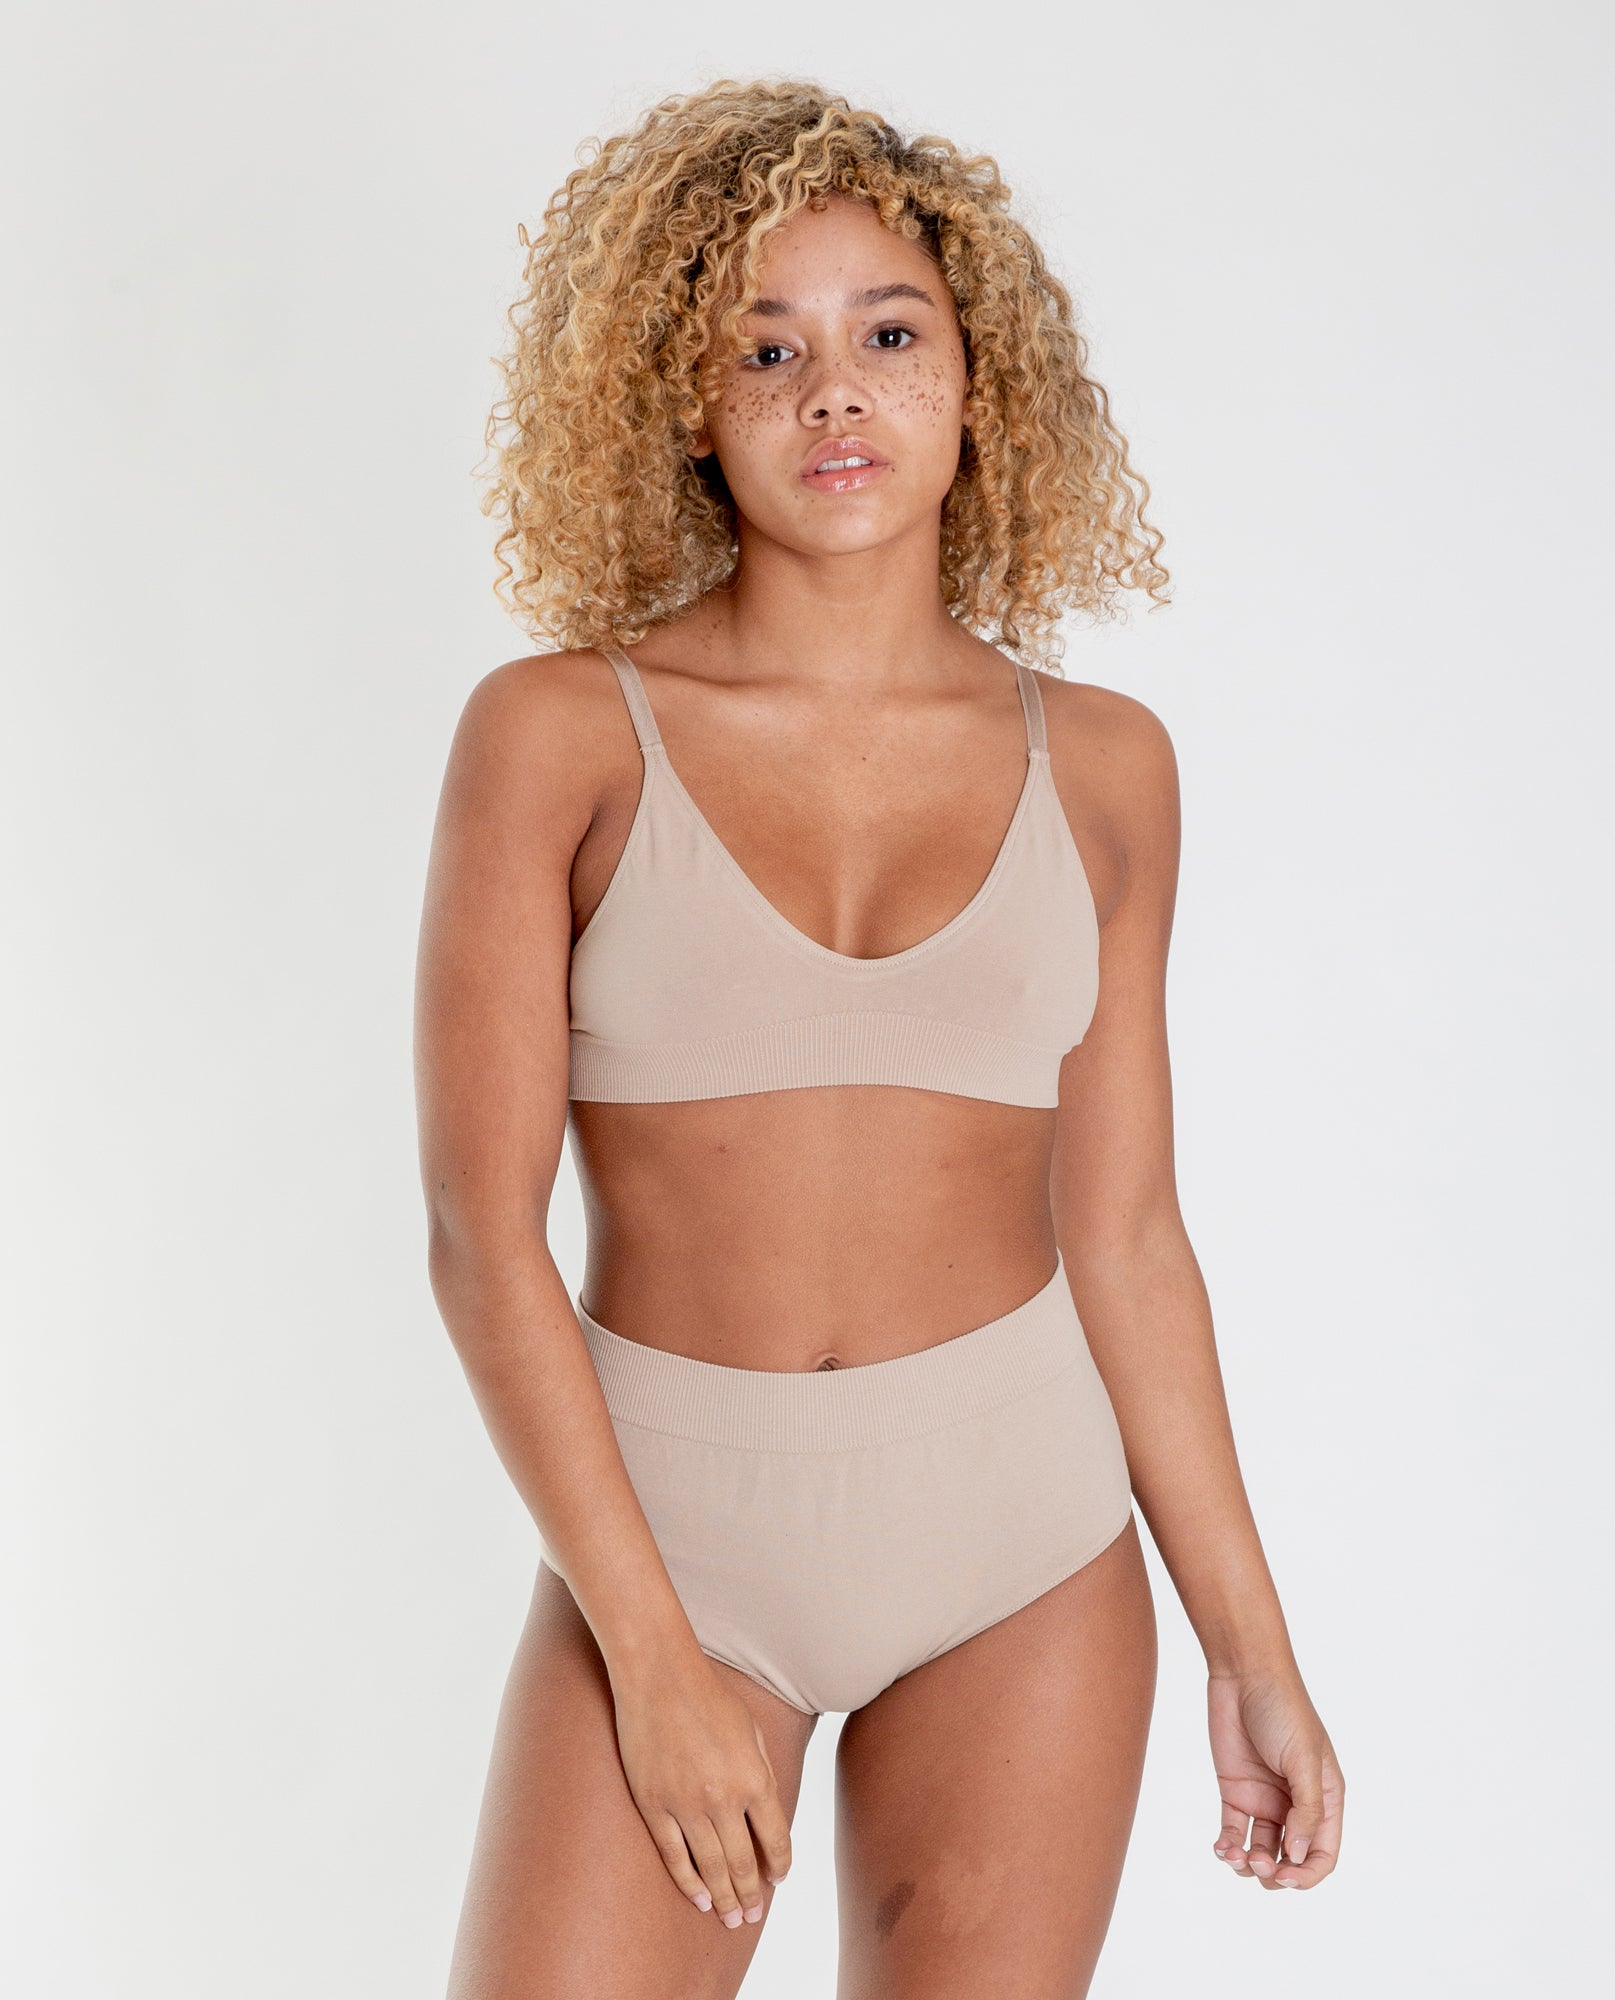 ILZE Organic Cotton Bra In Nude